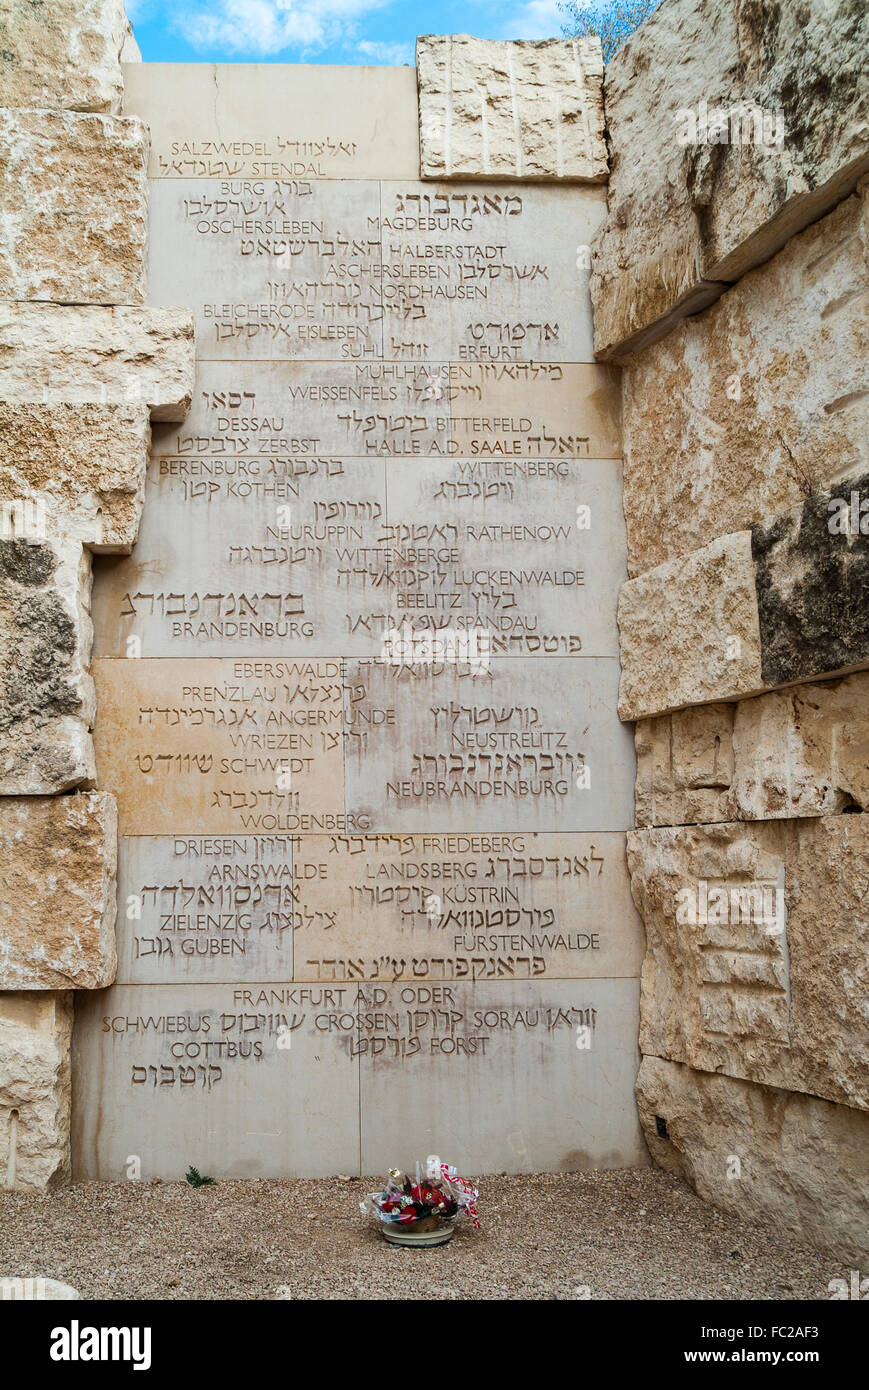 Valley of the Communities, stone walls with inscriptions commemorating over 5,000 Jewish communities, Yad Vashem, Stock Photo